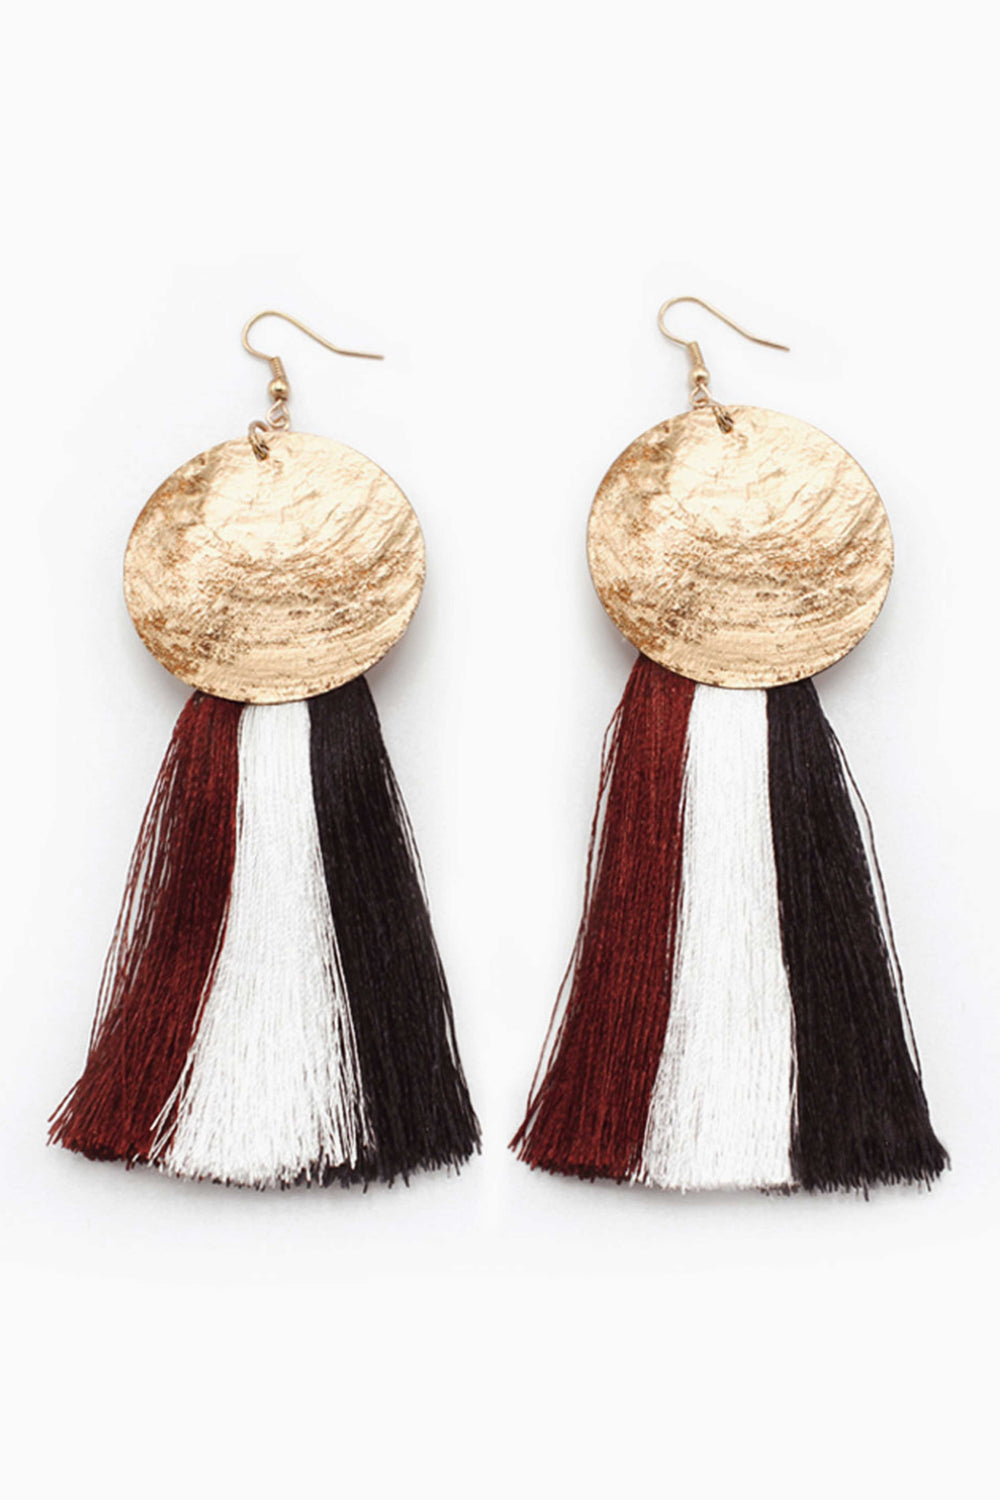 GYPSY SPELL EARRINGS - Chic Le Frique